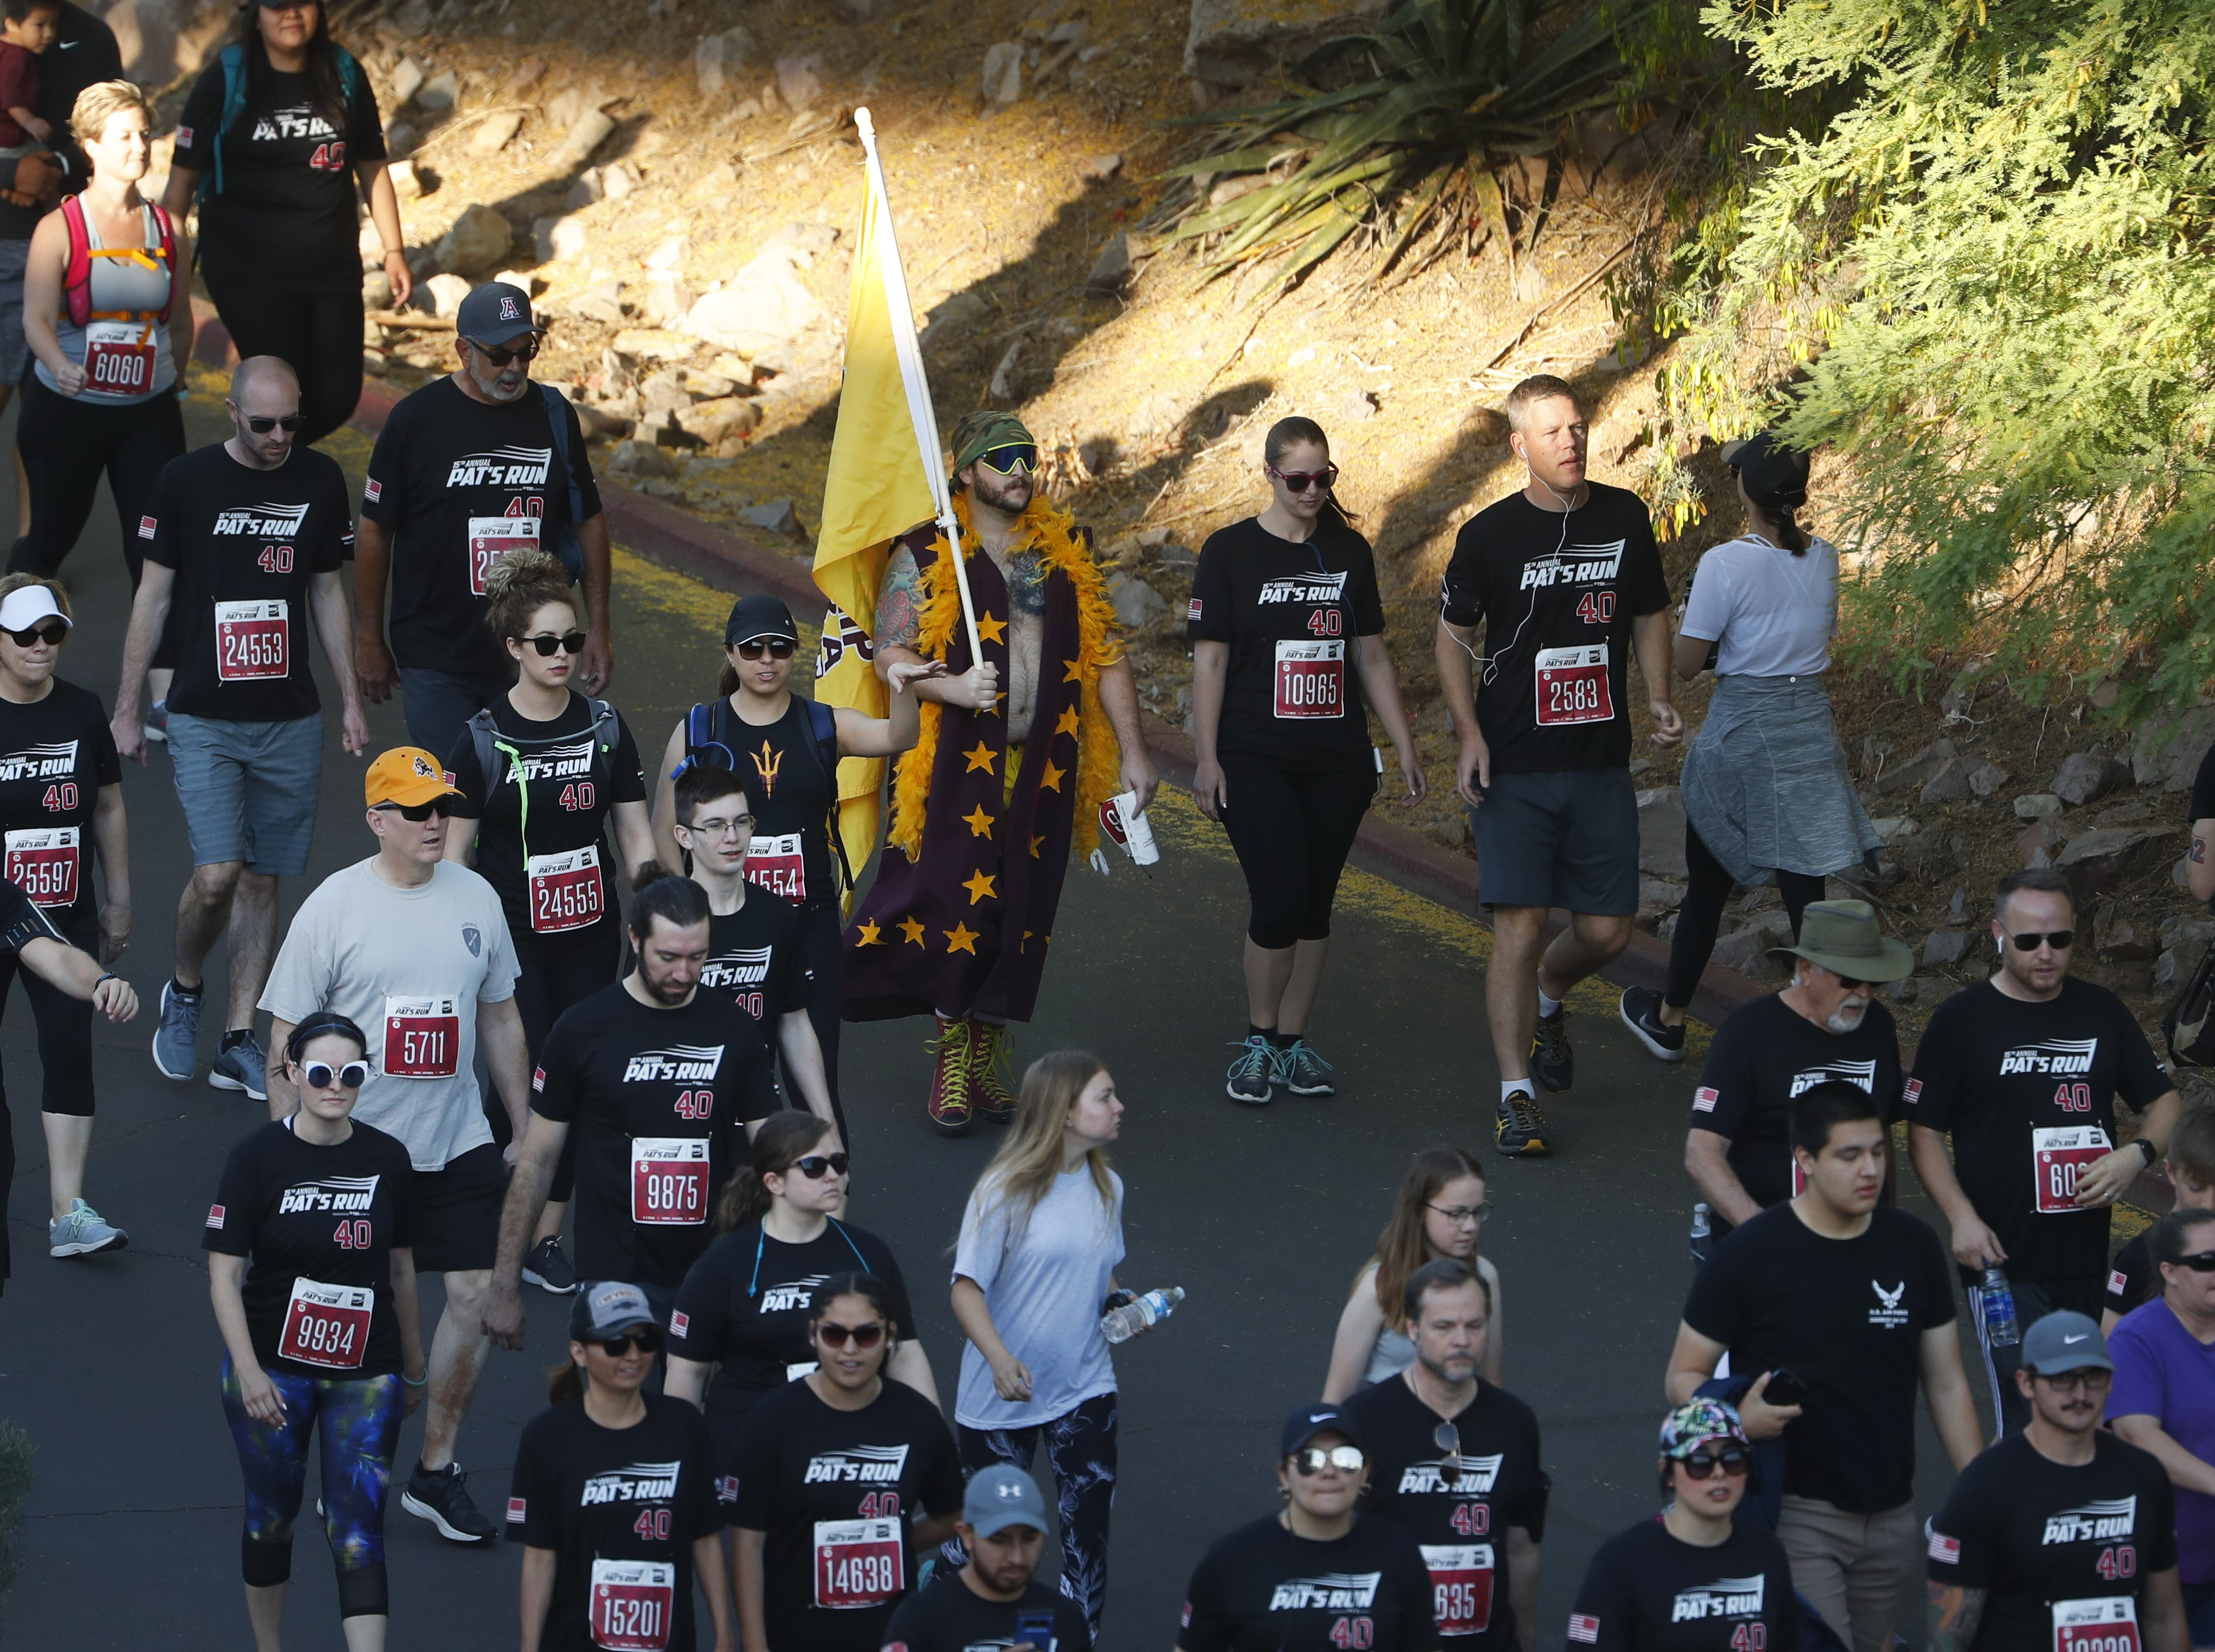 Participants make their way to the starting line during Pat's Run 2019 in Tempe, Ariz. on April 27, 2019.